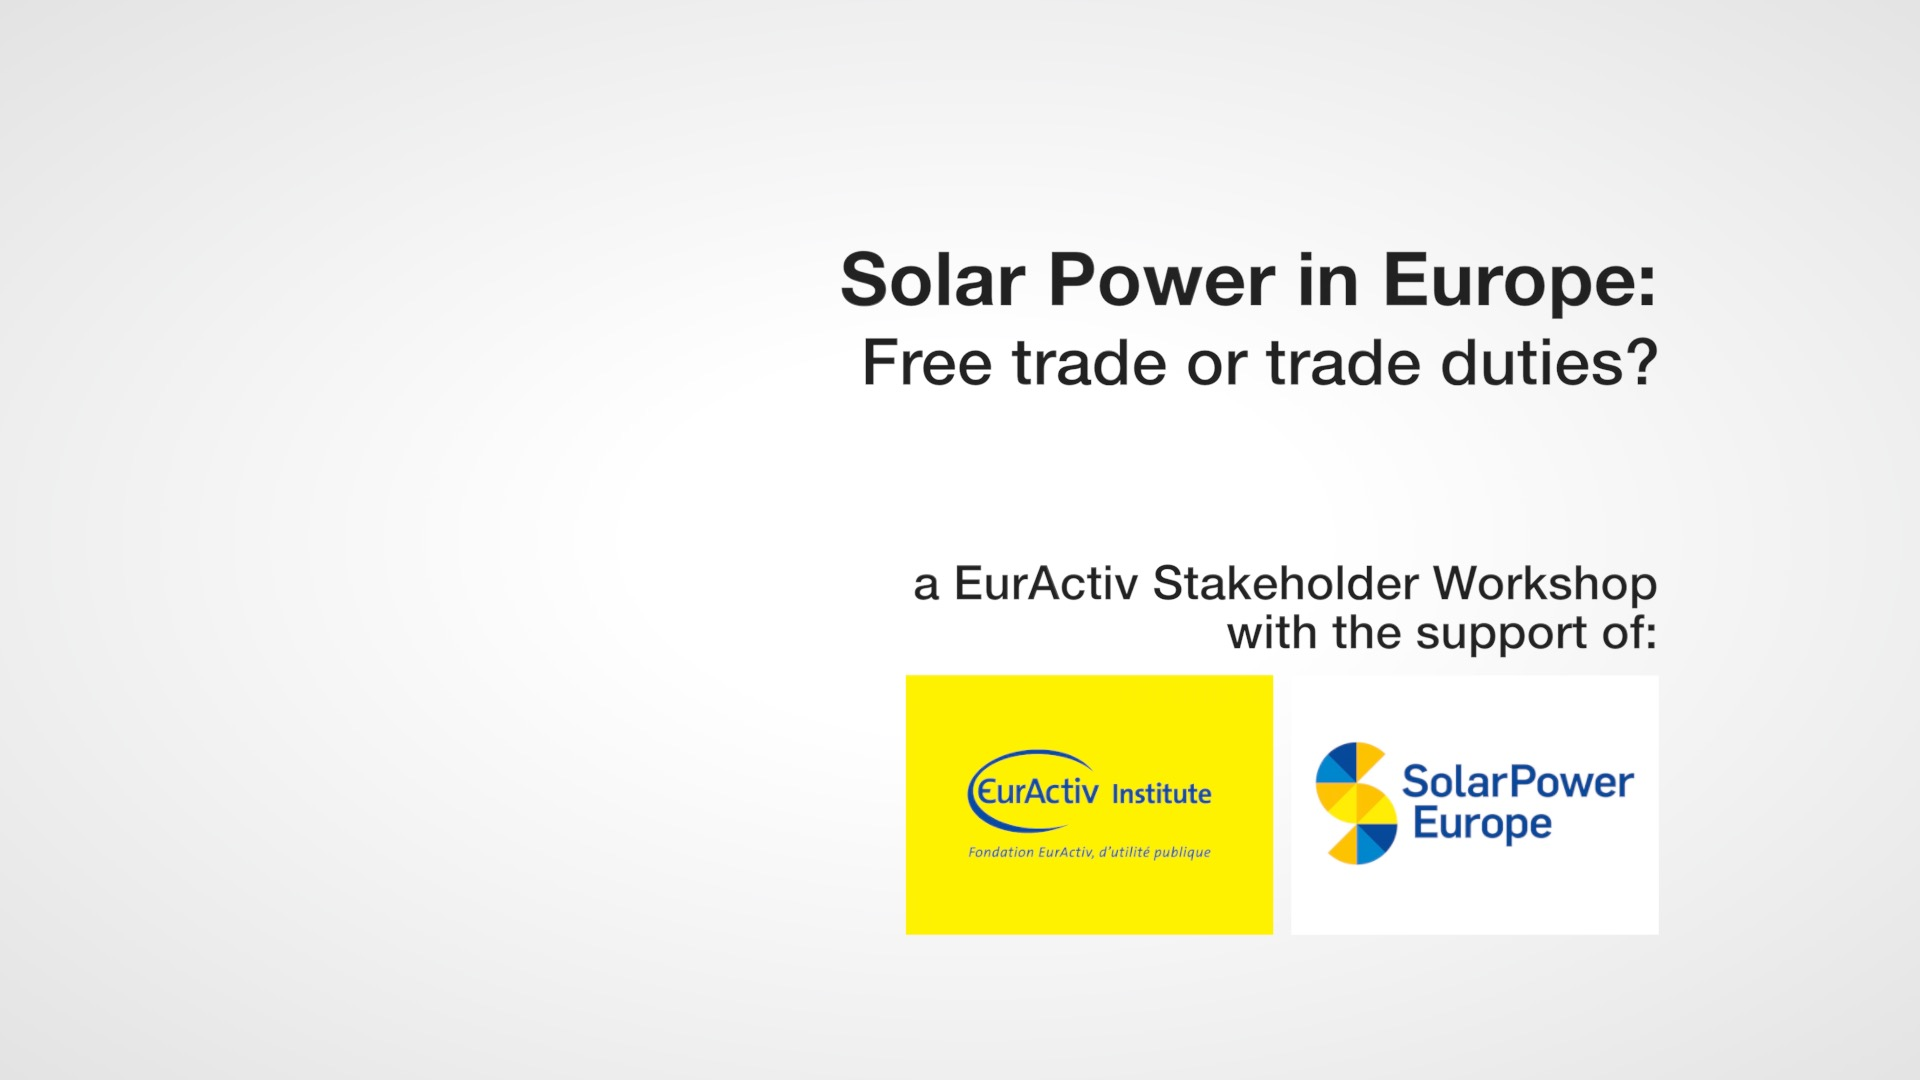 Solar power in Europe